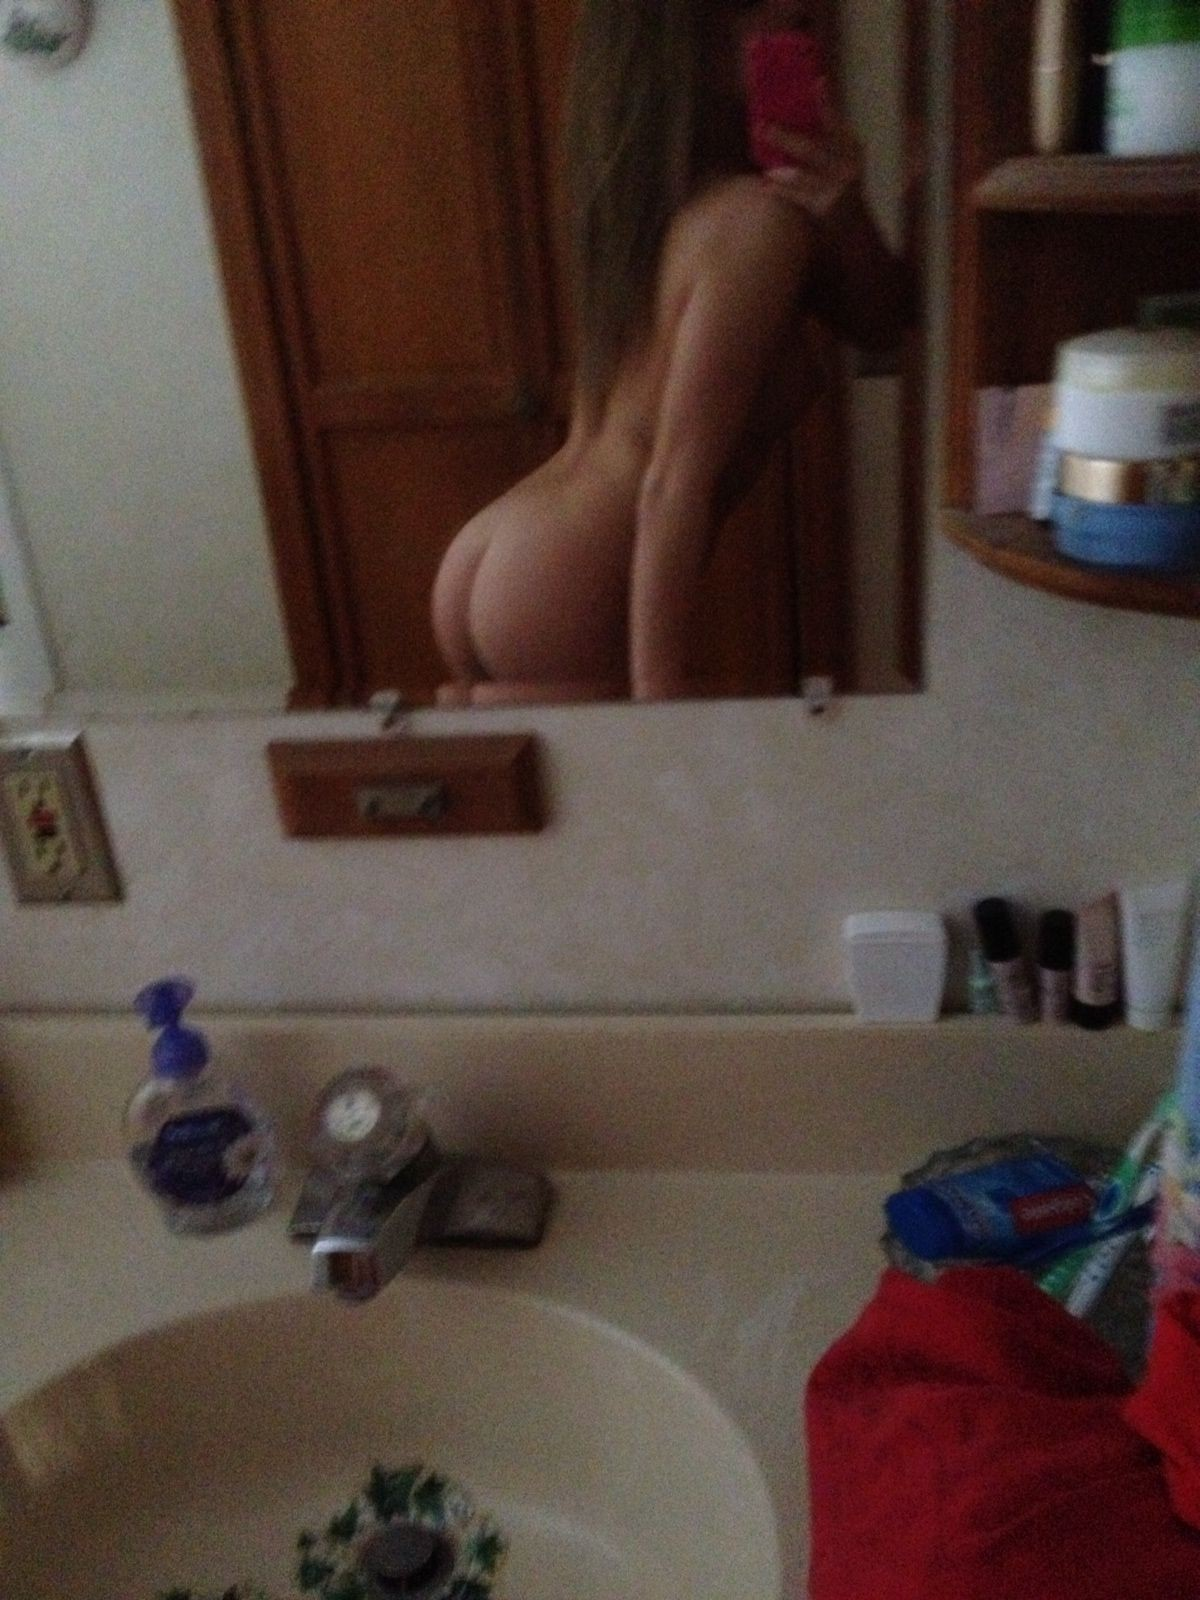 Ashley-Pac-Leaked-Fappening-11-thefappening.us